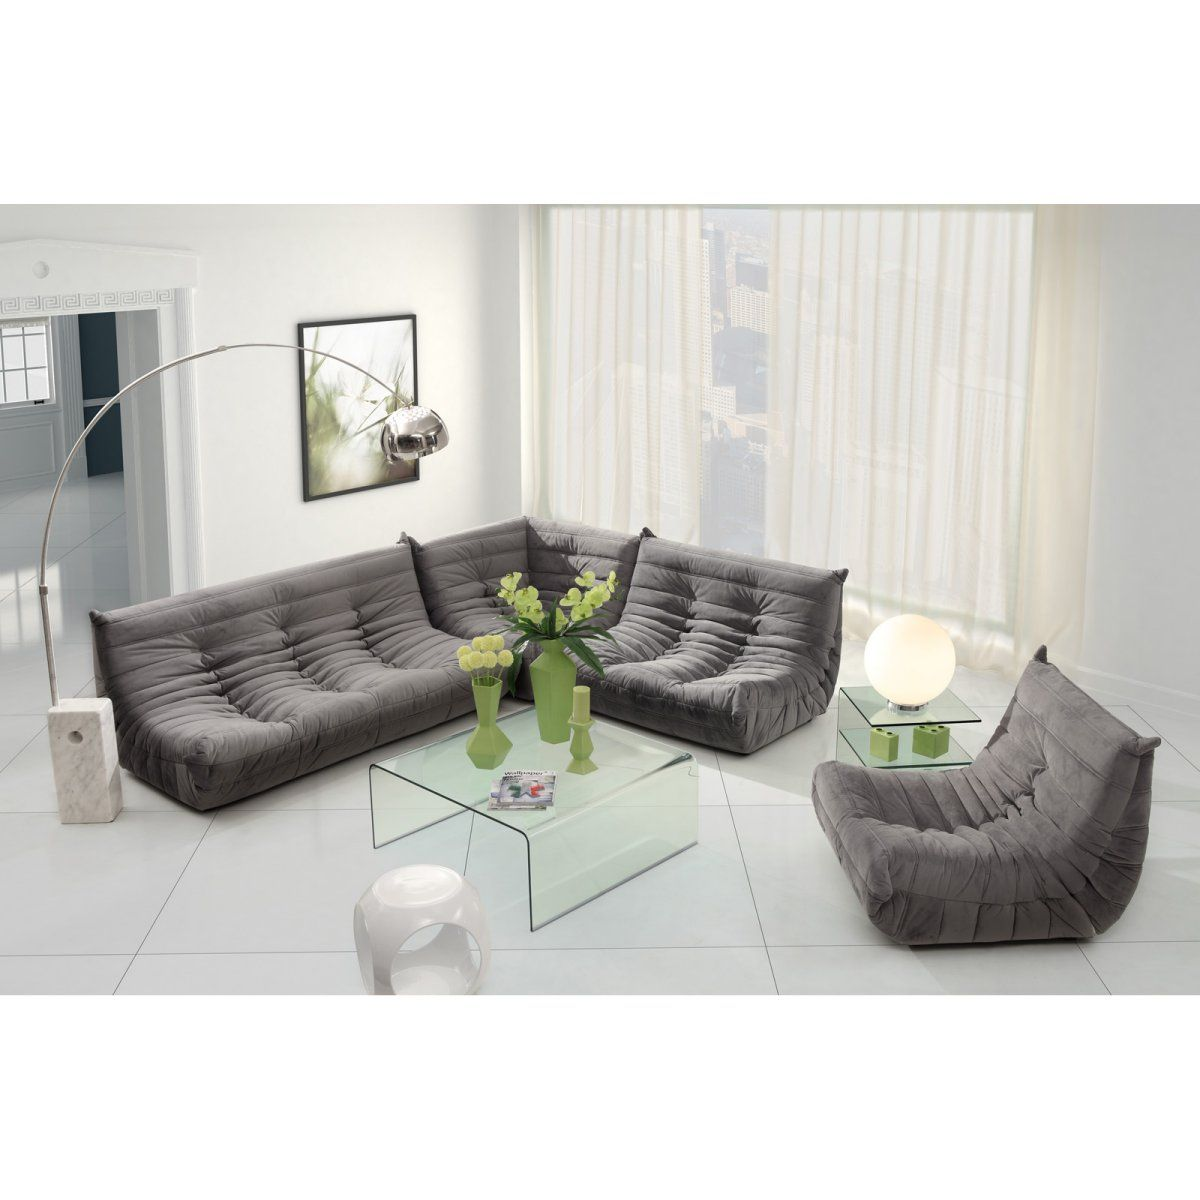 Zuo modern circus sectional sofa set living room at modern furniture